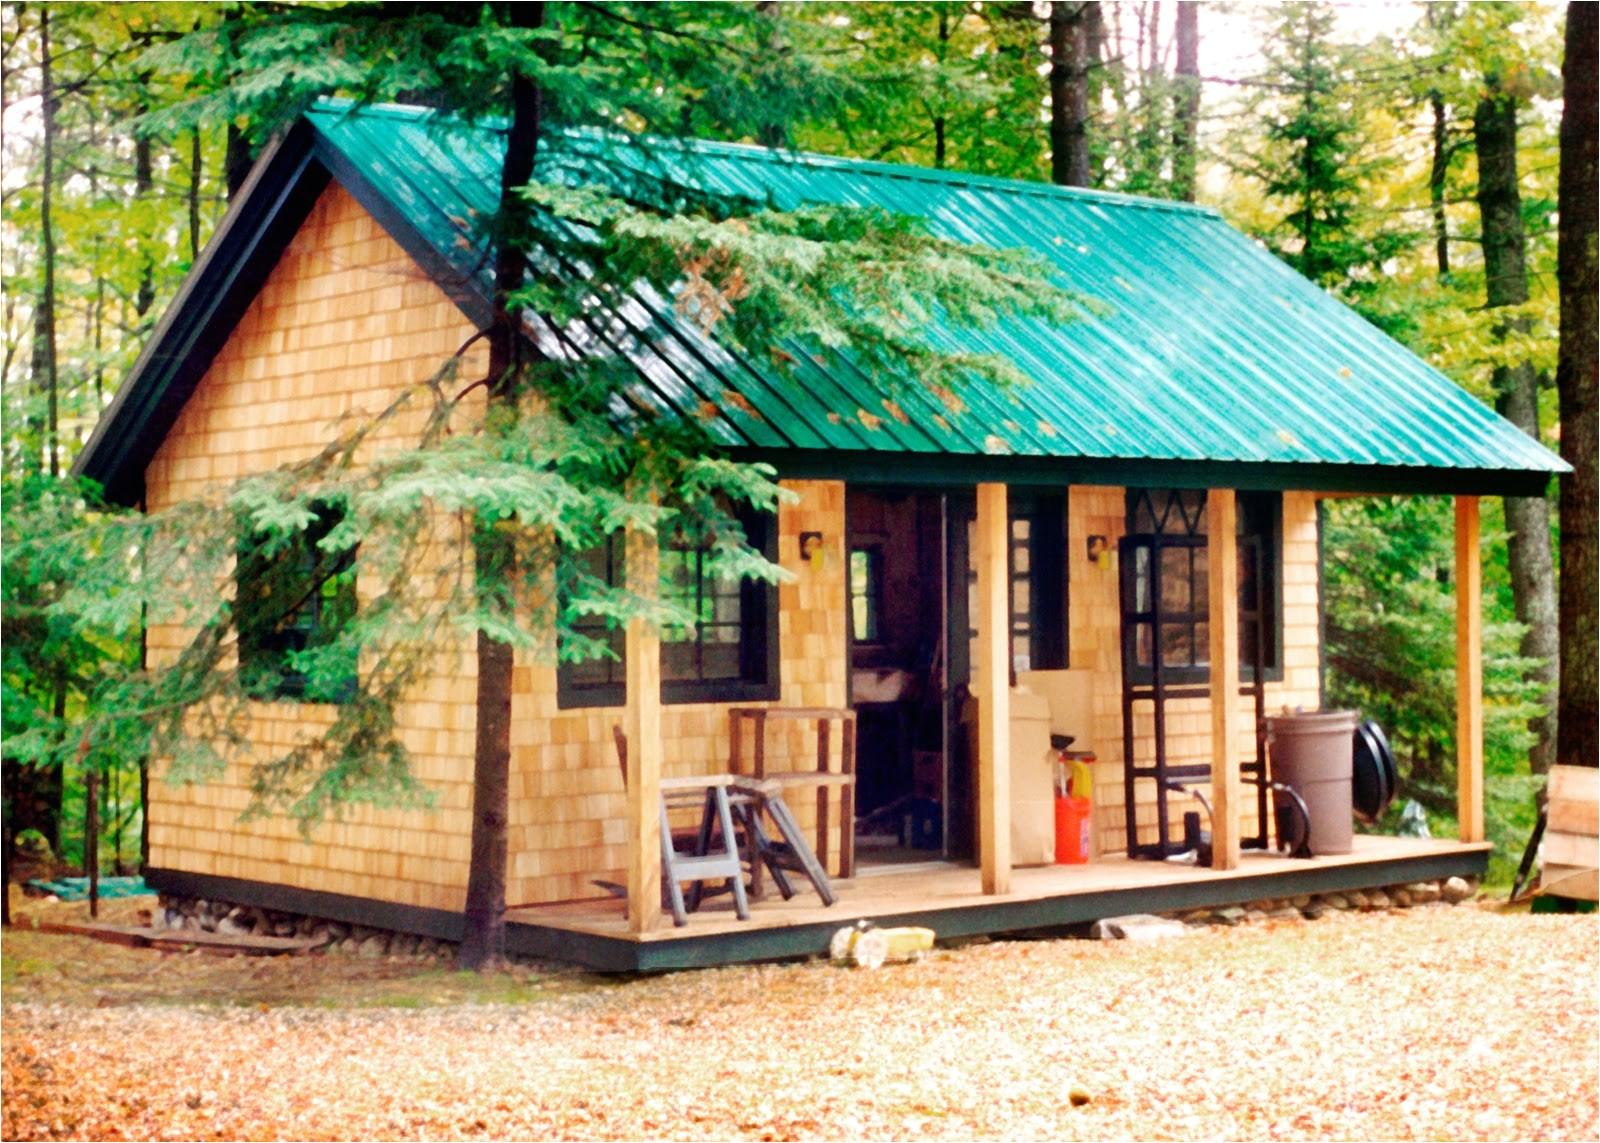 Tiny Home Cabin Plans Relaxshacks Com Win A Full Set Of Jamaica Cottage Shop